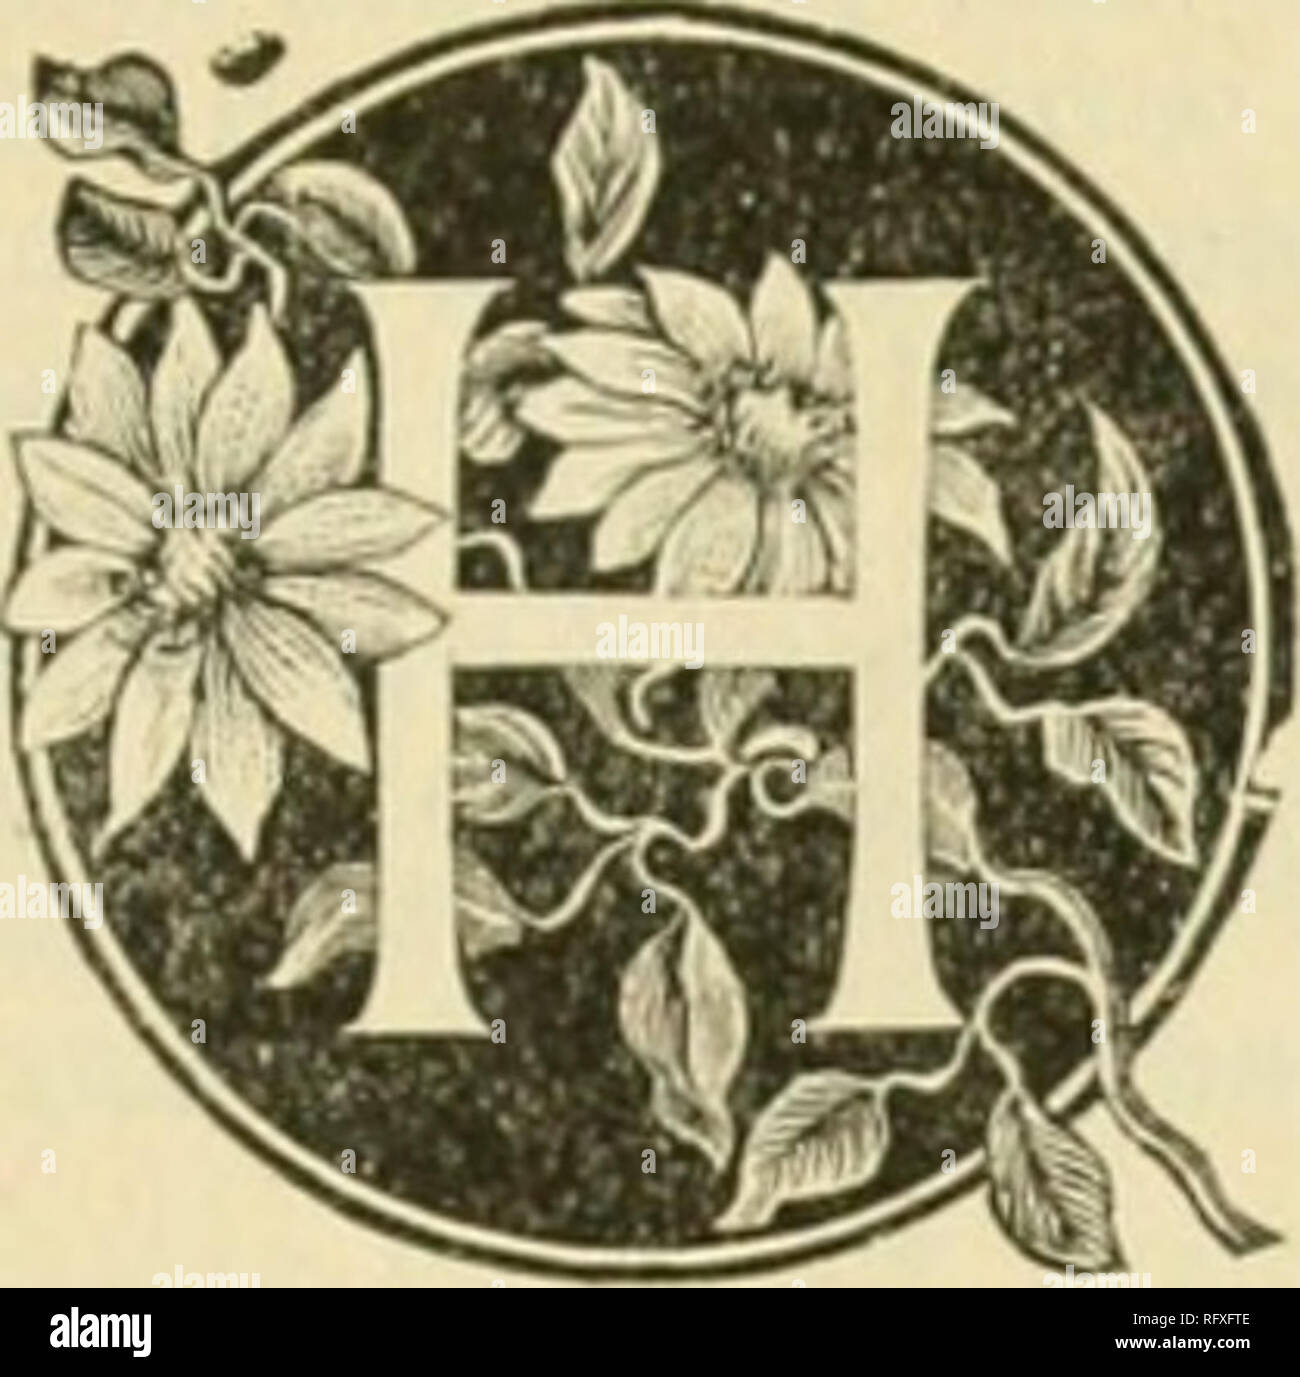 """. The Canadian horticulturist [monthly], 1892. Gardening; Canadian periodicals. The Canadian HoRTicuinuRisr 109 IS slâ¢kA^â l^â (; irlti i ri:i:s wnii arsenical poisons a i)axgi:rol's rraciice? AlN(""""i received several eiKiuiries from correspondents con- cerning the foolish and inaccurate statements made upon the above subject, which you refer to on page 83 of your last issue, I therefore beg a little space to submit facts, which, although well known to many of your readers, may- be reassuring to others. In the first place, spraying with arsenites, through the energy and perseverance of M - Stock Image"""